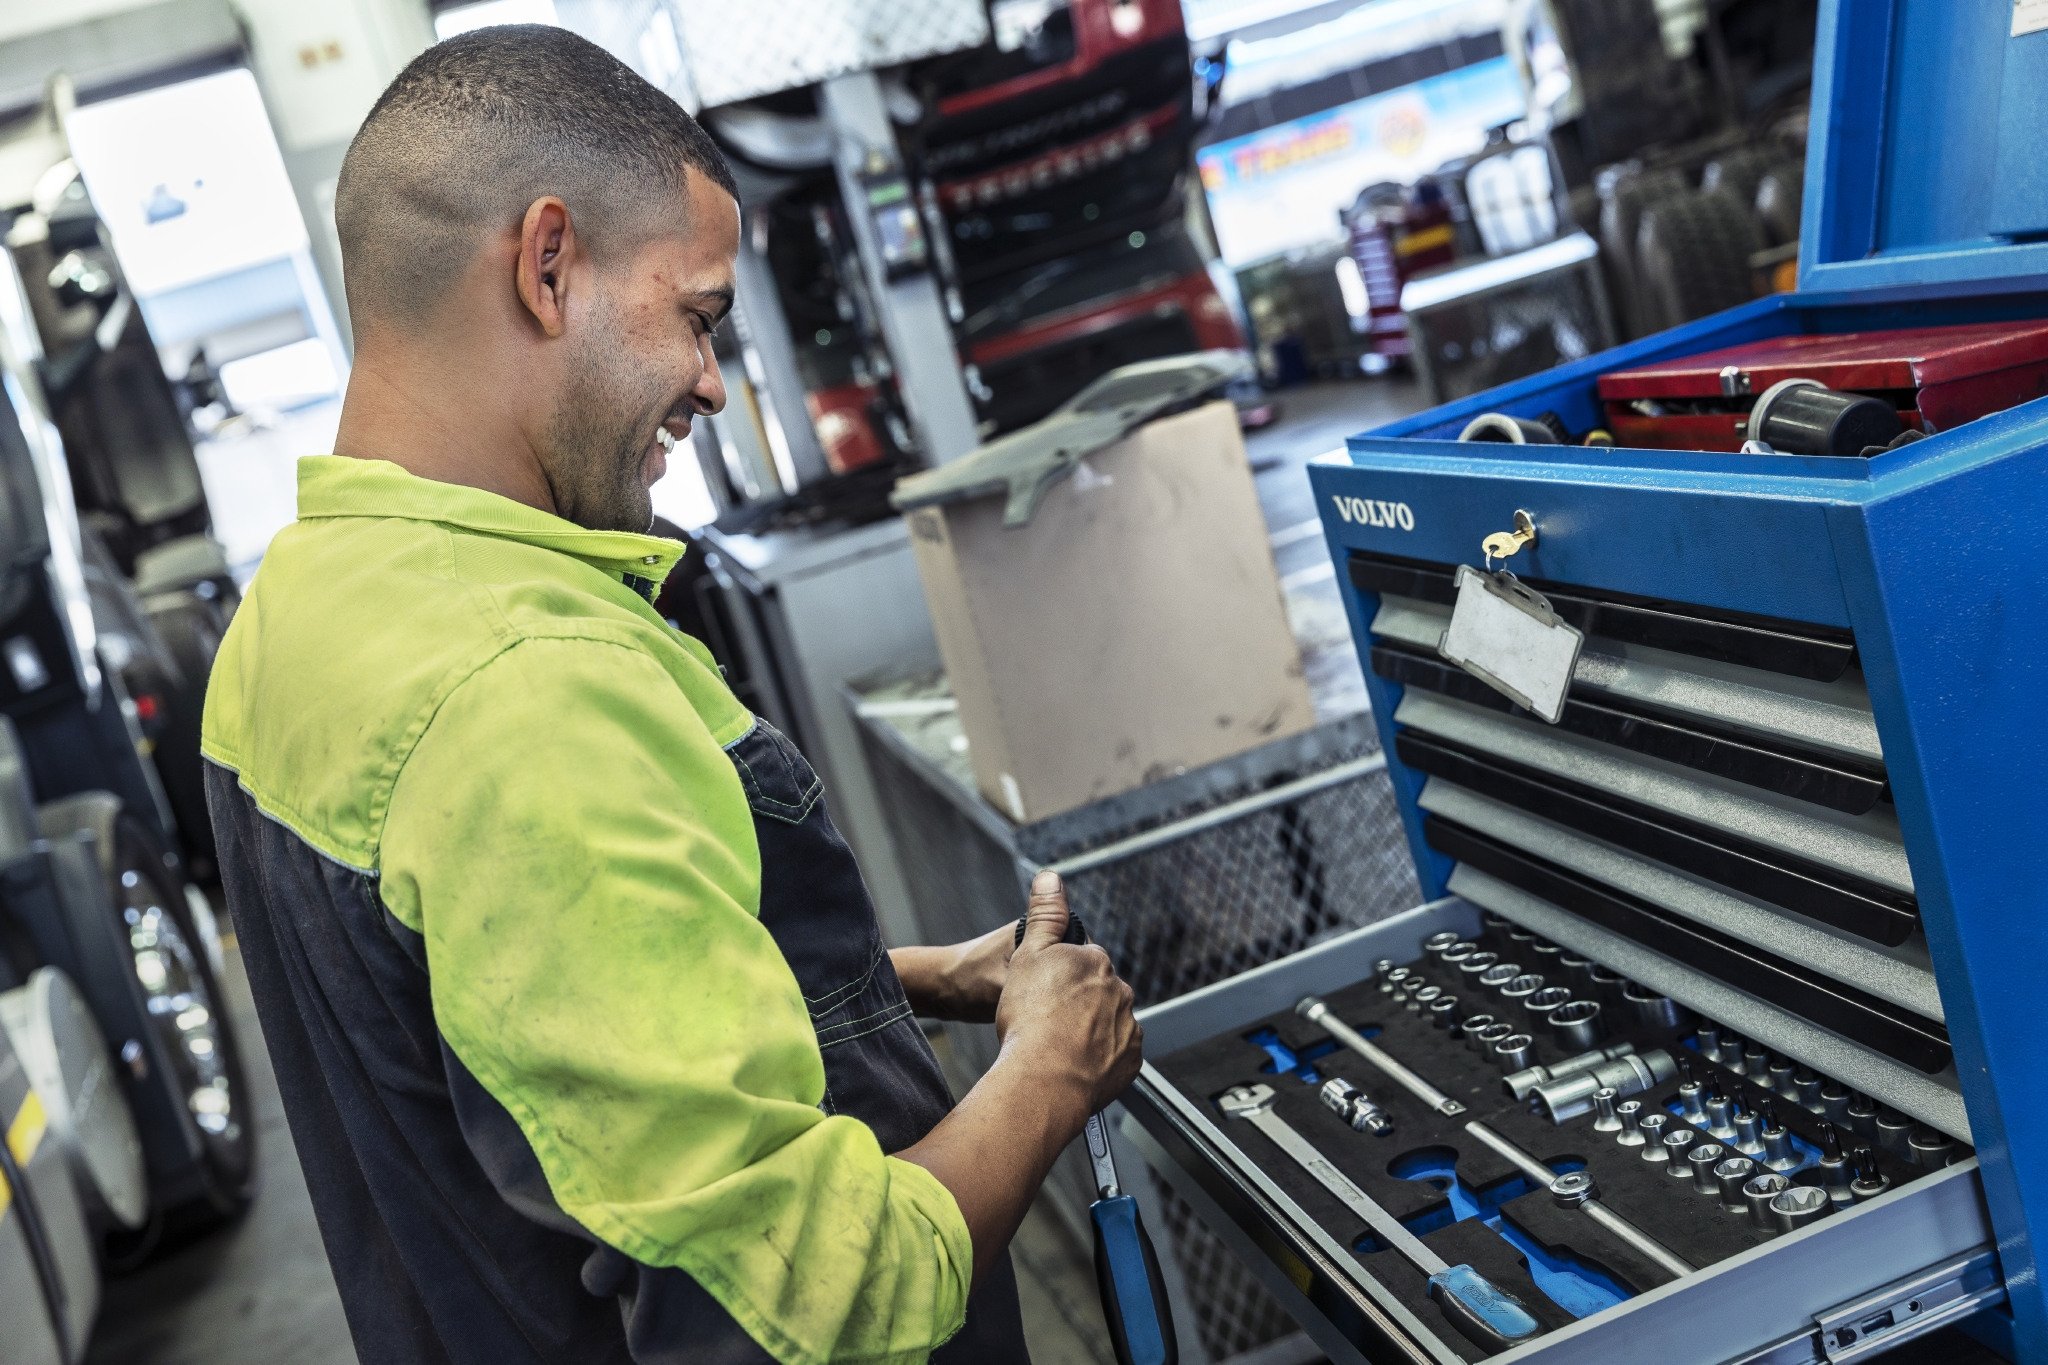 New right to repair rules: 5 things car owners need to know